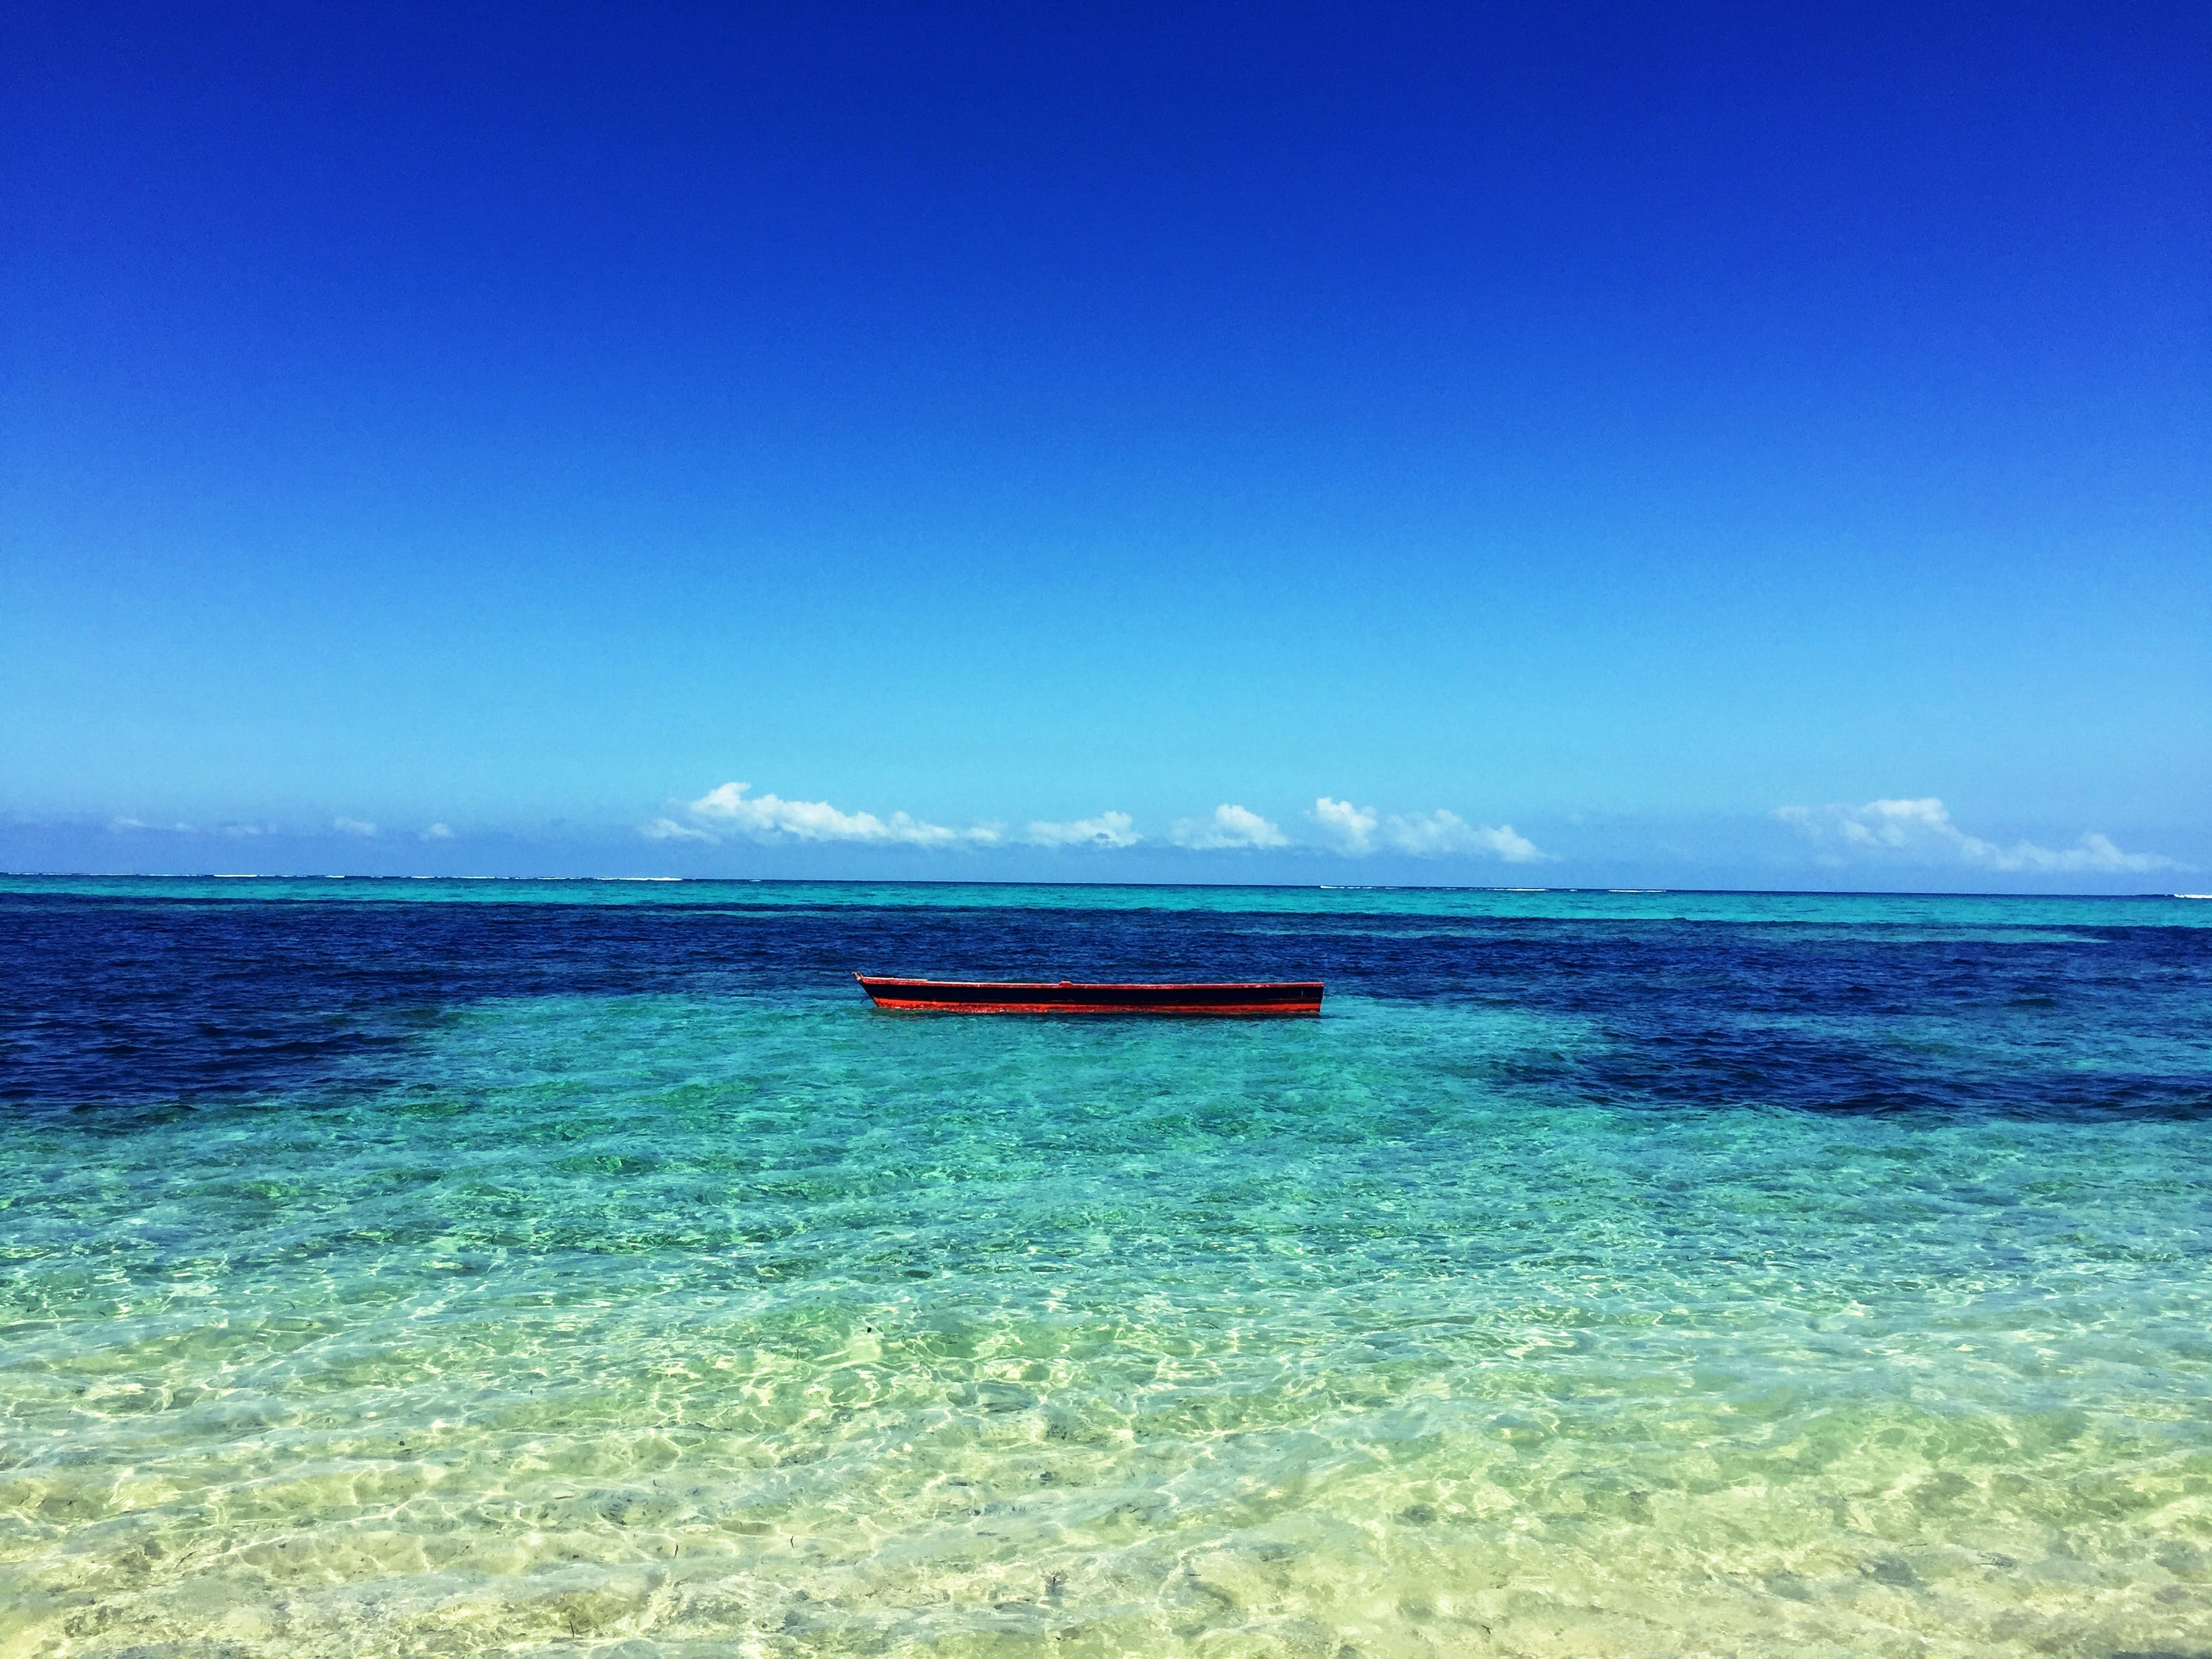 Boat in the Middle of Atoll Photo